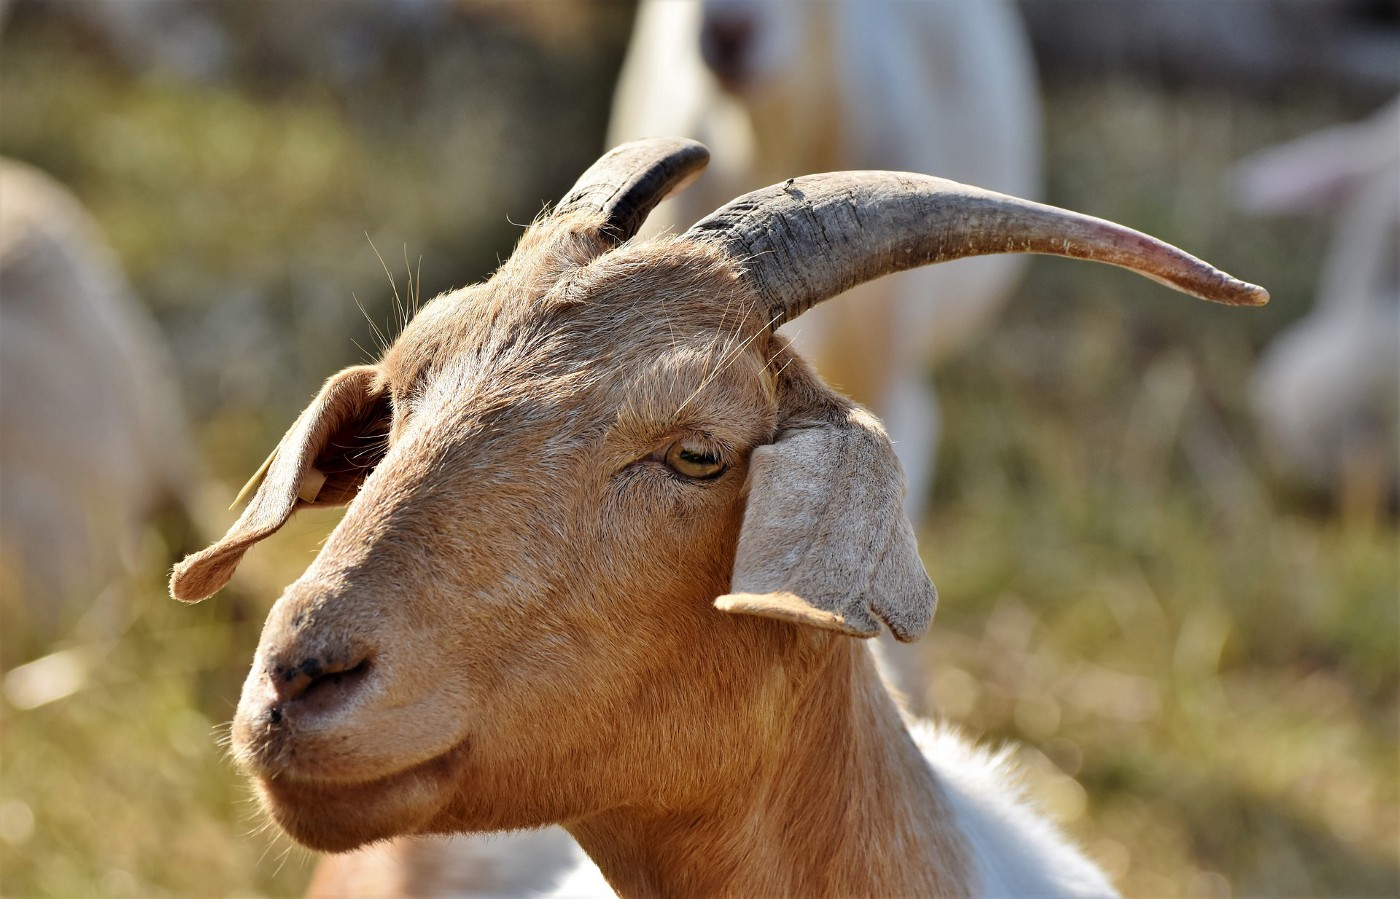 A tan goat with two horns standing on a hillside.